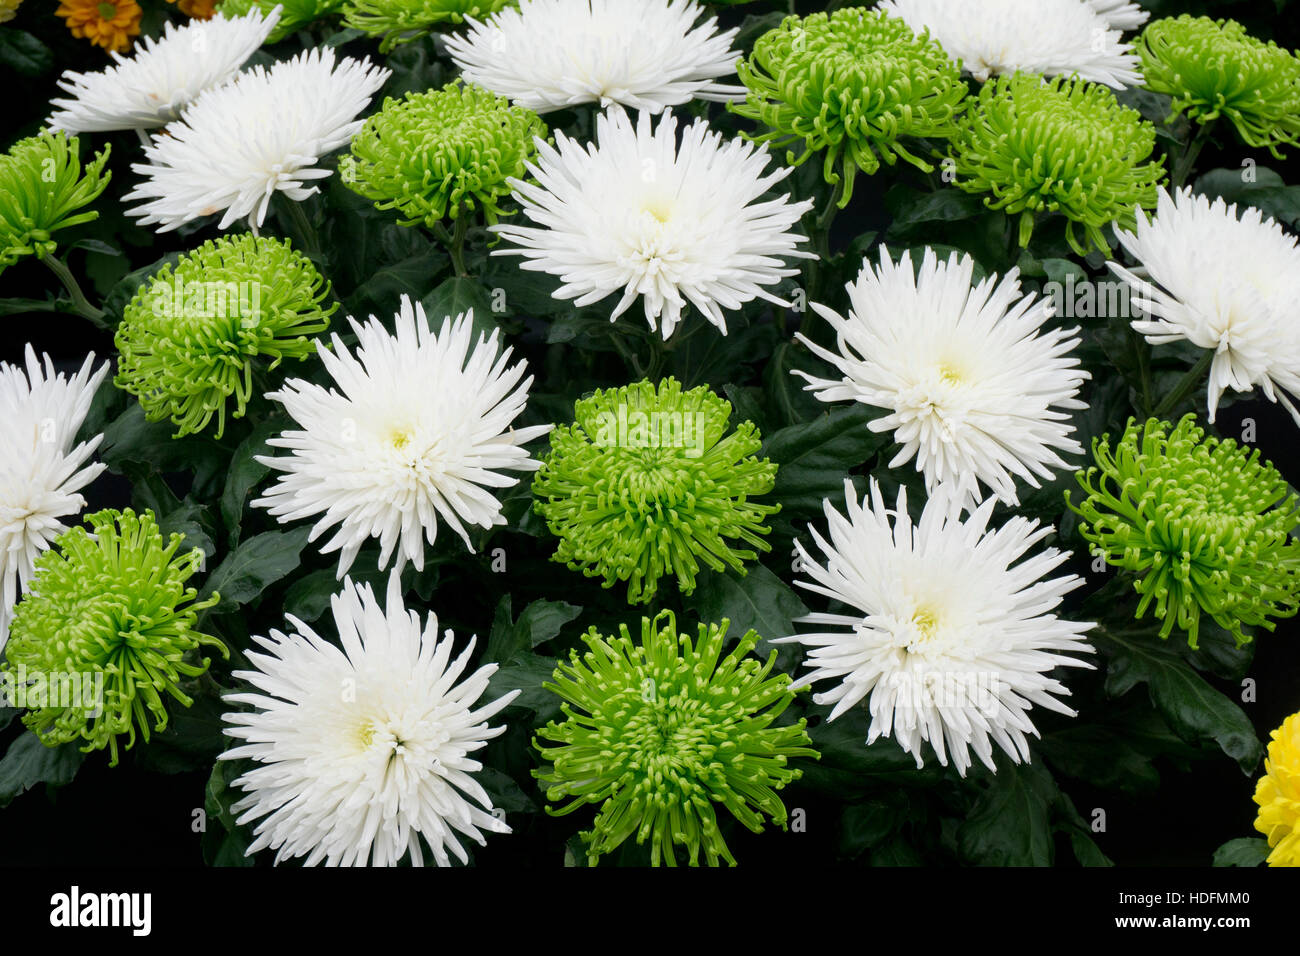 White mums stock photos white mums stock images alamy chrysanthemum flowers green white mums chrysanths stock image mightylinksfo